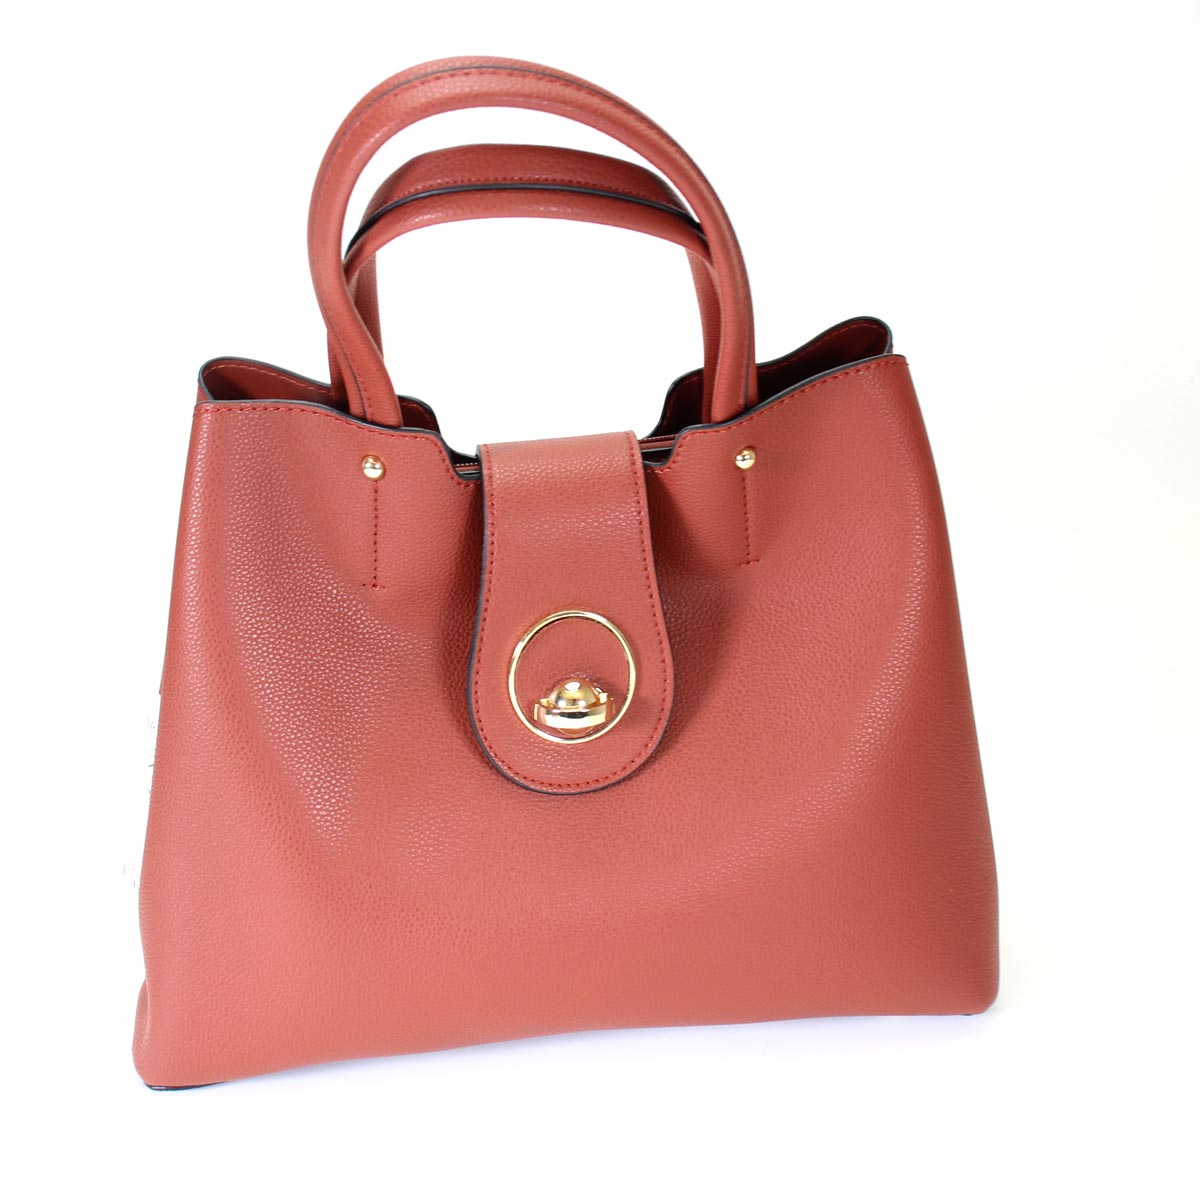 Katie Handbag- more colors